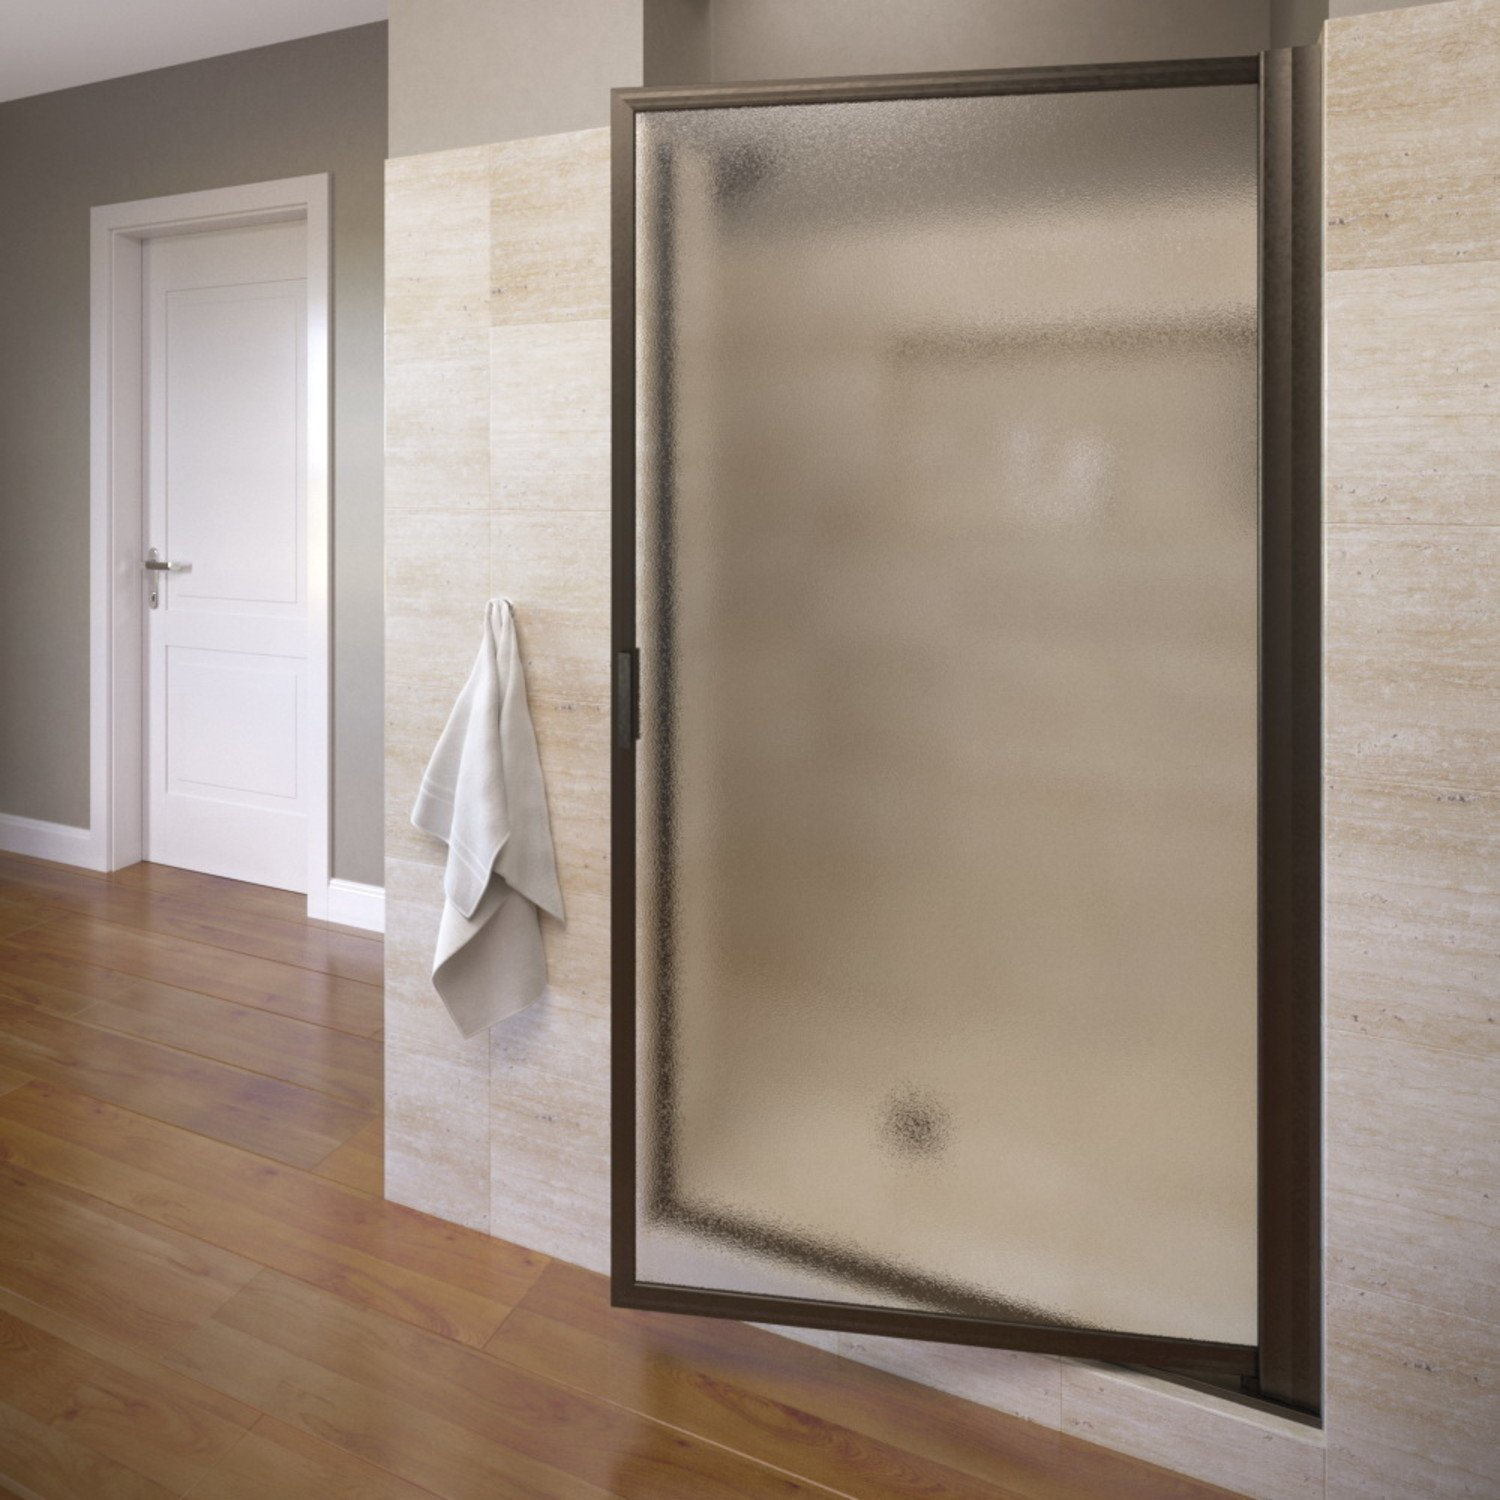 Basco Deluxe 32.75- 34.5 in. Width, Glass Shower Door, Obscure Glass, Oil Rubbed Bronze Finish